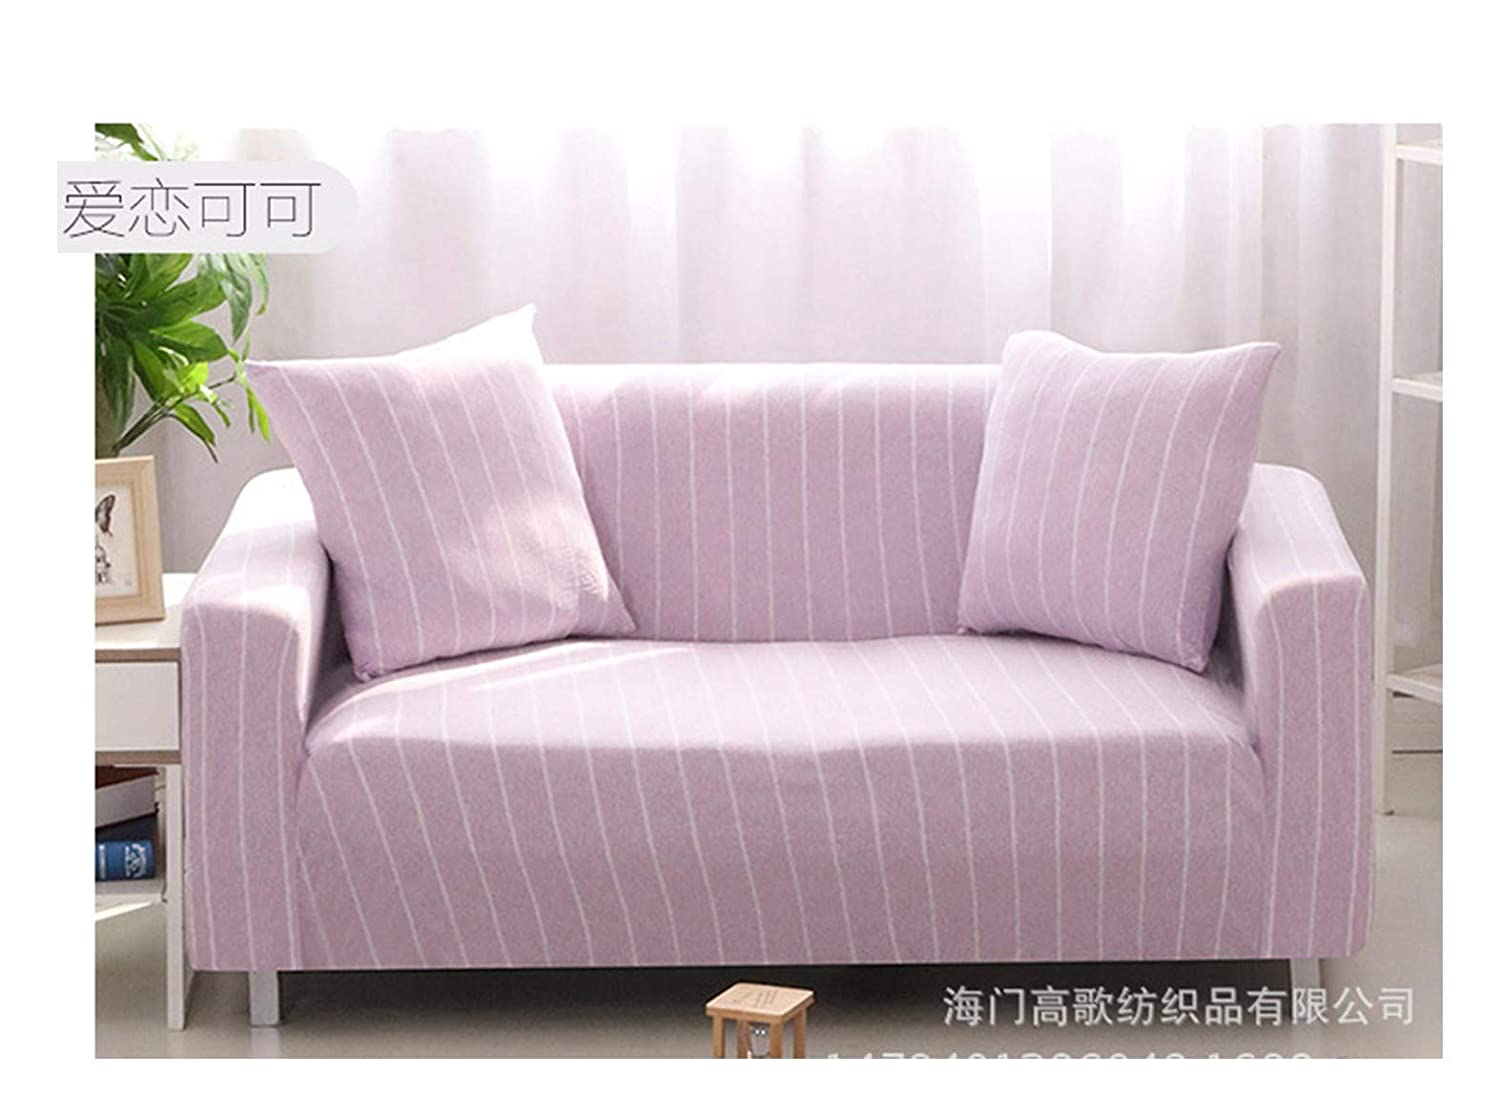 4seat VGUYFUYH Purple And White Stripes Skid Proof Sofa Cover Cotton Full Package Elasticity Household Versatile Four Seasons Sofa Cover Simple Fashion One Set Durable Dust Proof Pet Dog Predective Cov